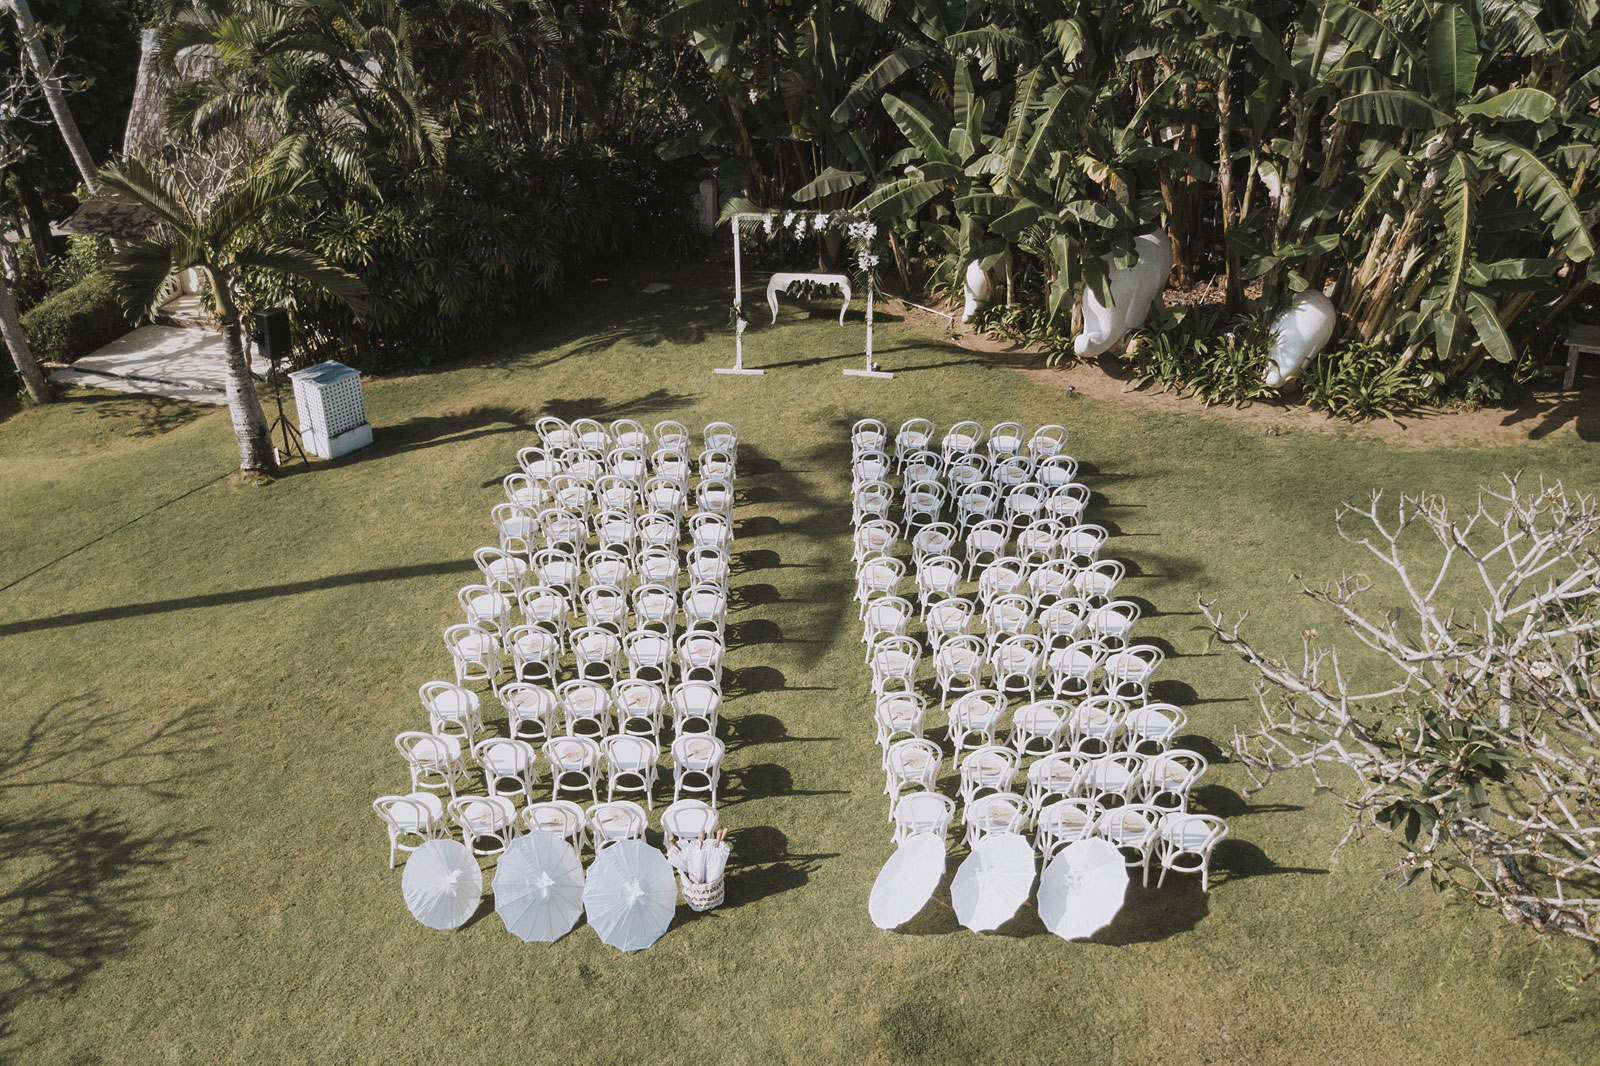 newfound-t-k-canggu-bali-ubud-wedding-photographer-297